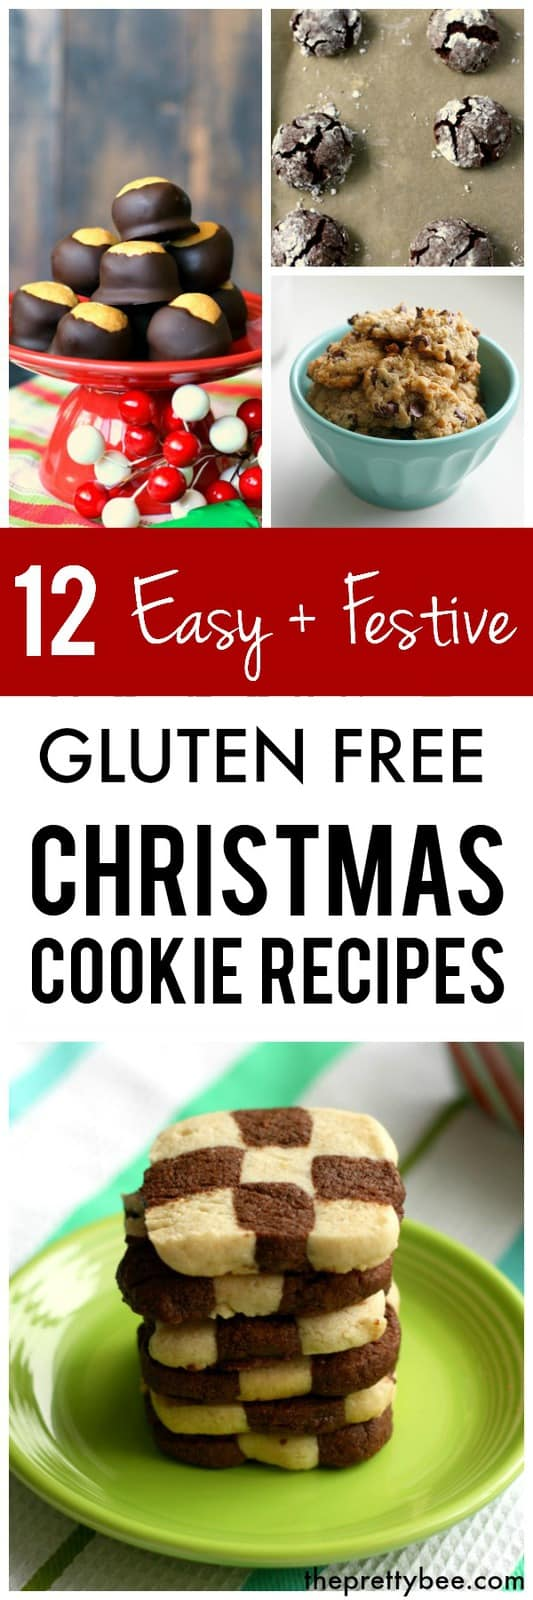 12 Days Of Gluten Free Christmas Cookies The Pretty Bee